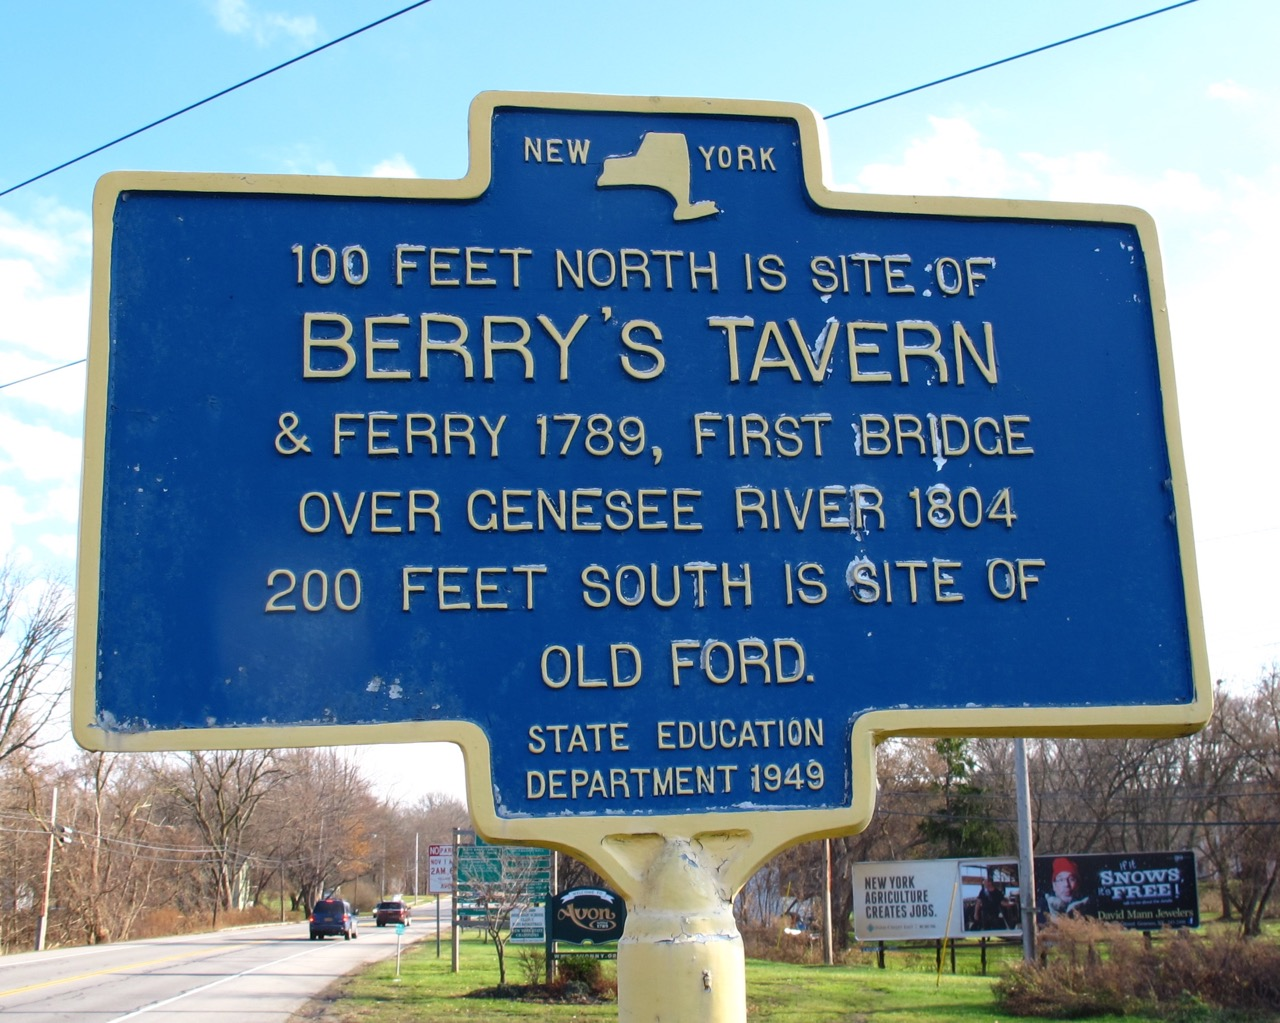 Historic Marker, at the Rts. 5 & 20 bridge over the Genesee River